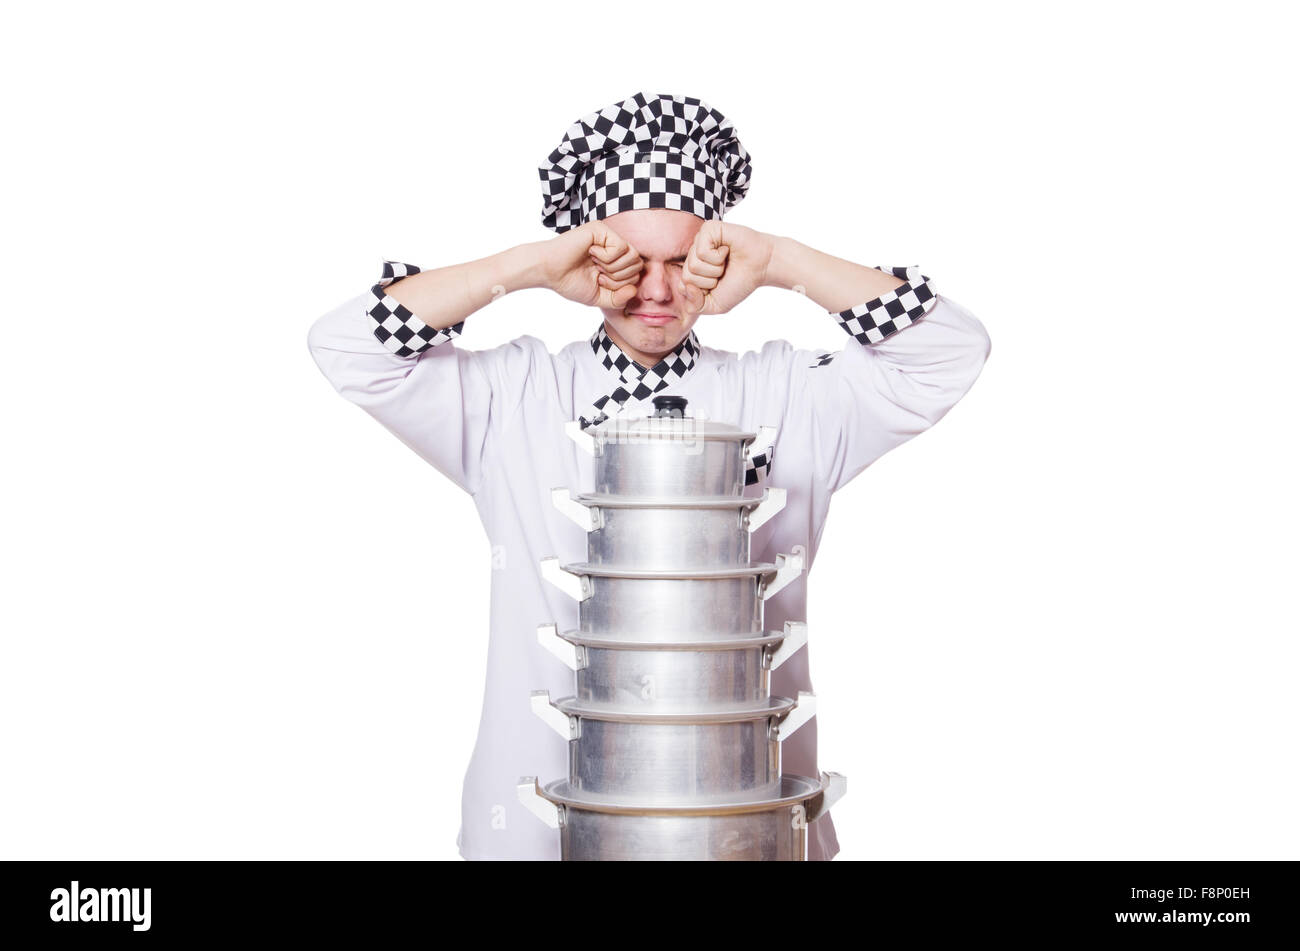 Funny male cook isolated on white - Stock Image